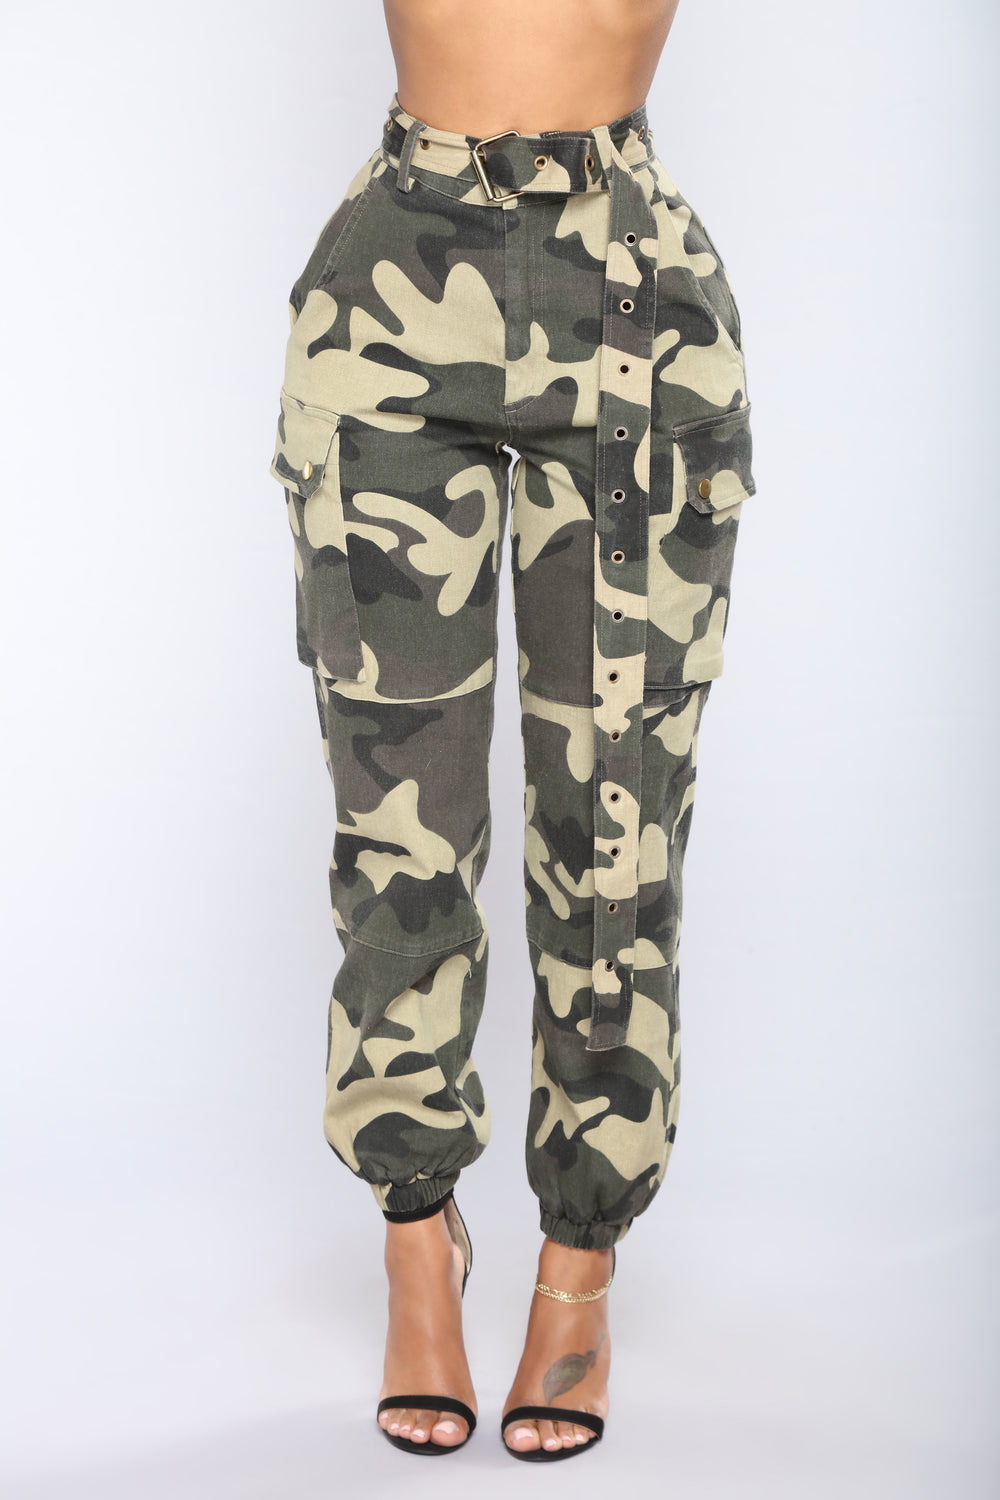 Discover lightweight camouflage pants and camouflage cargo pants at Cabela's with adjustable cuffs to keep cool temperatures and moisture out.